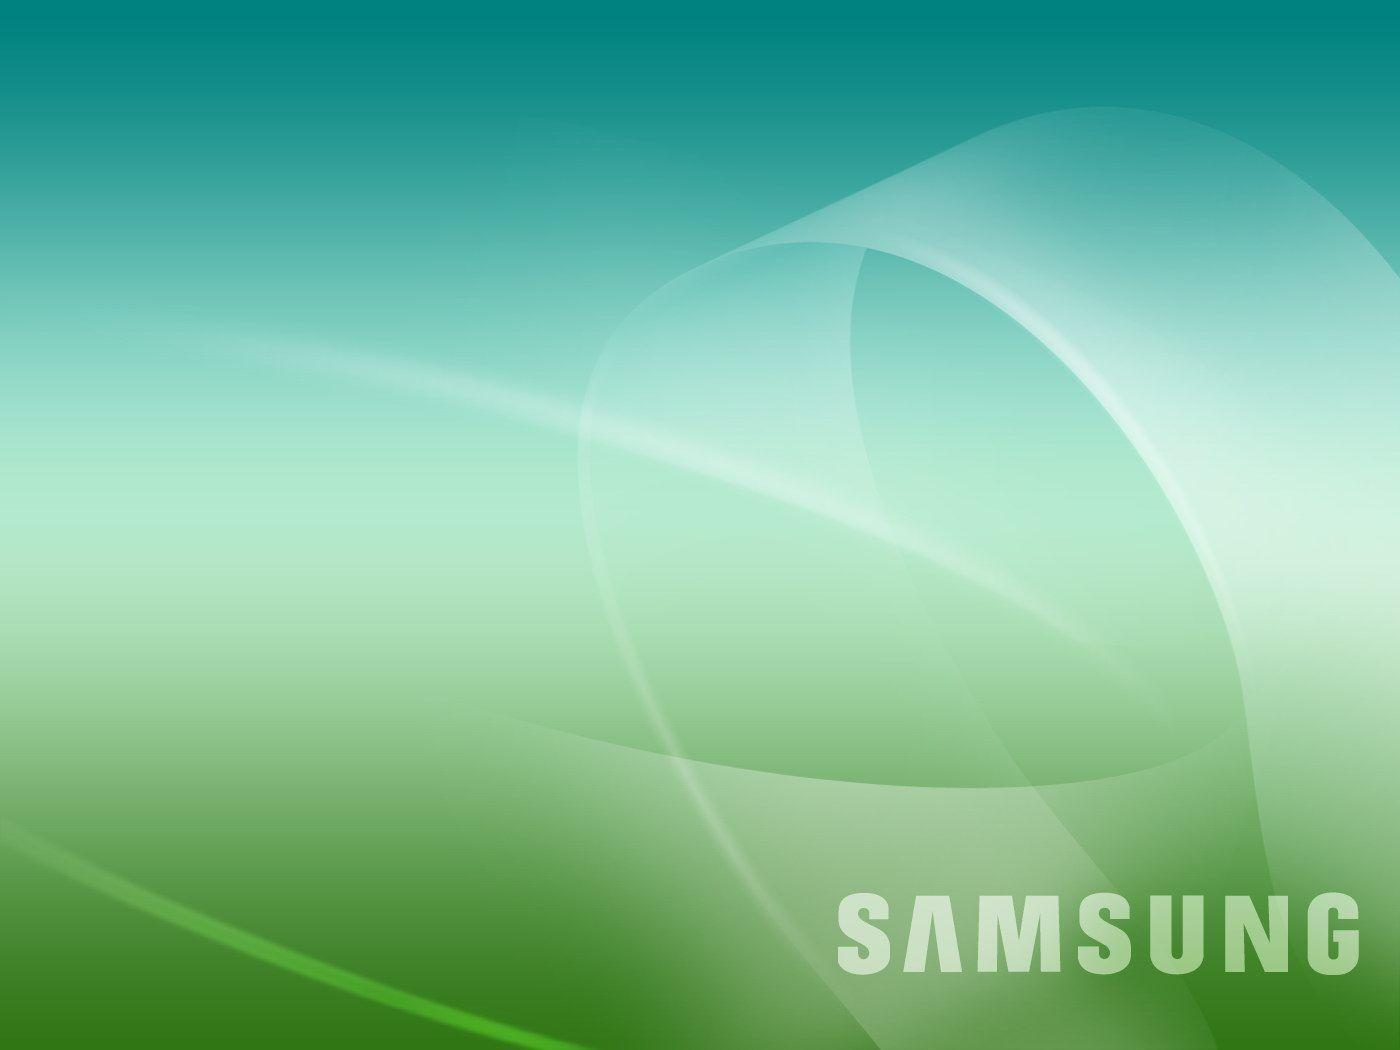 Samsung Wallpaper Hd Group: Samsung Wallpapers Gallery